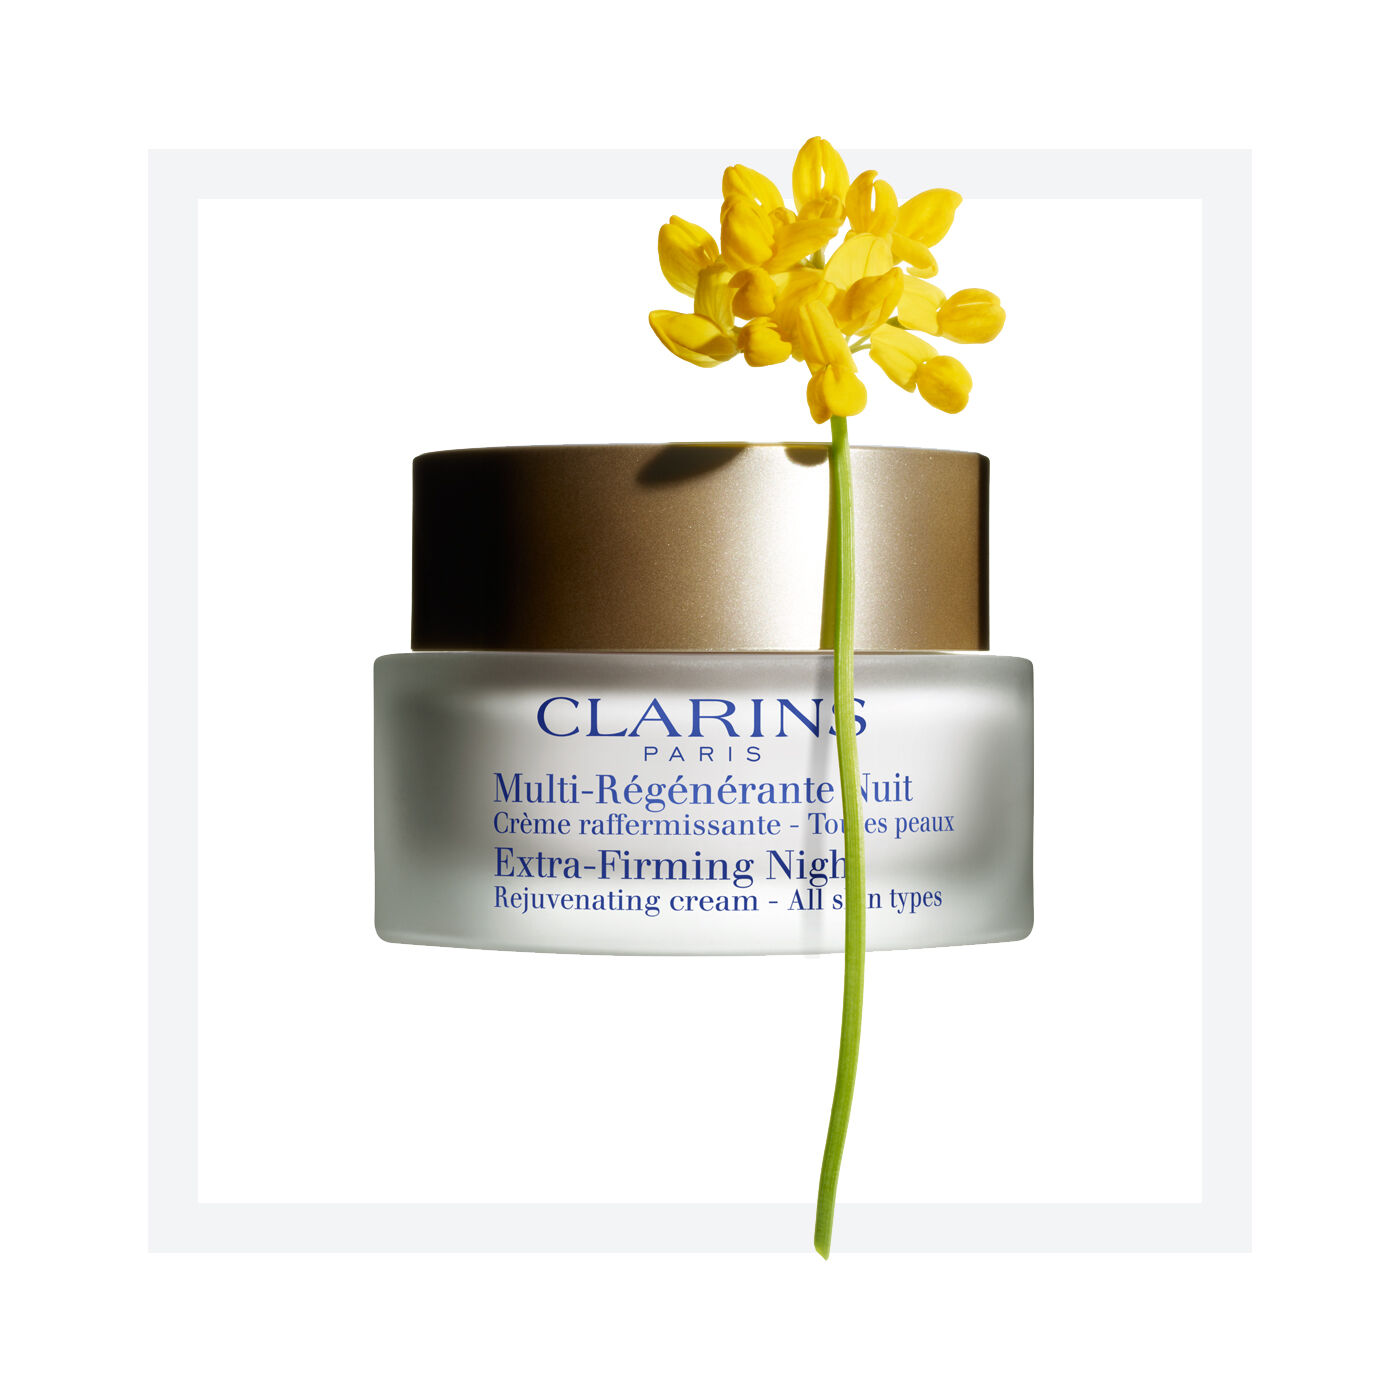 Extra-Firming Extra-Firming Night Cream (All skin types)